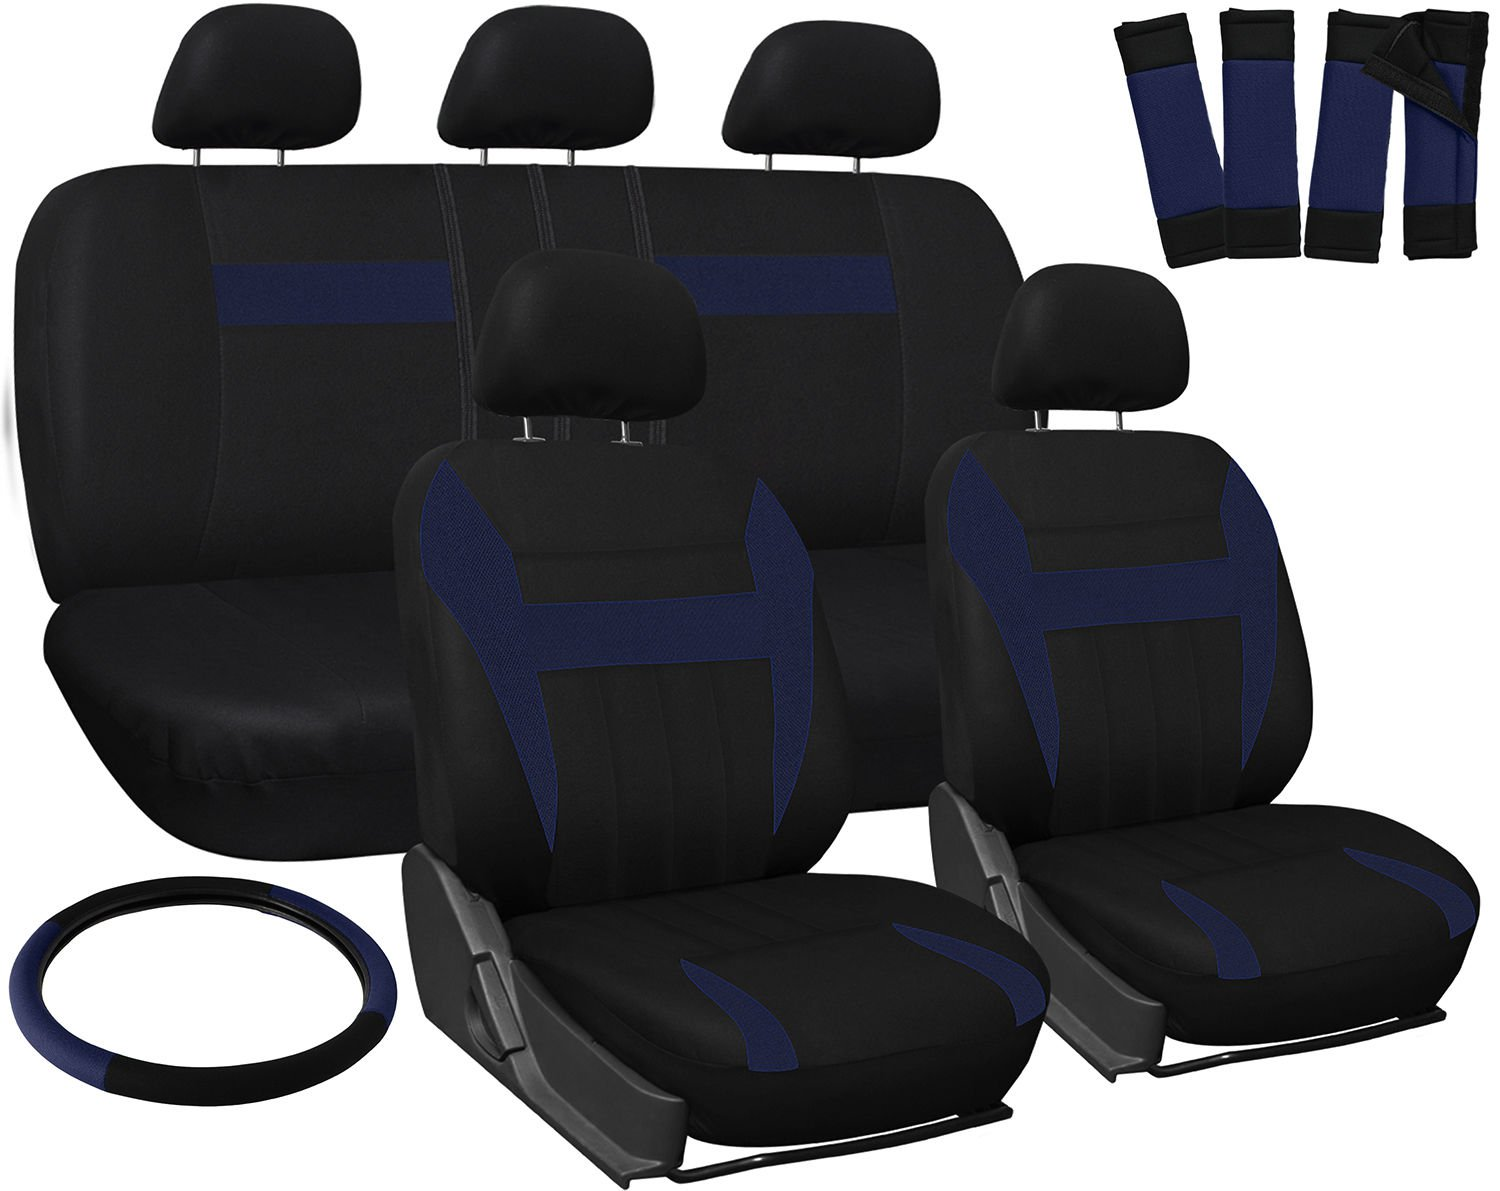 New Car Seat Covers for Hyundai Sonata Blue Black Steering Wheel/Belt Pad/Head Rests